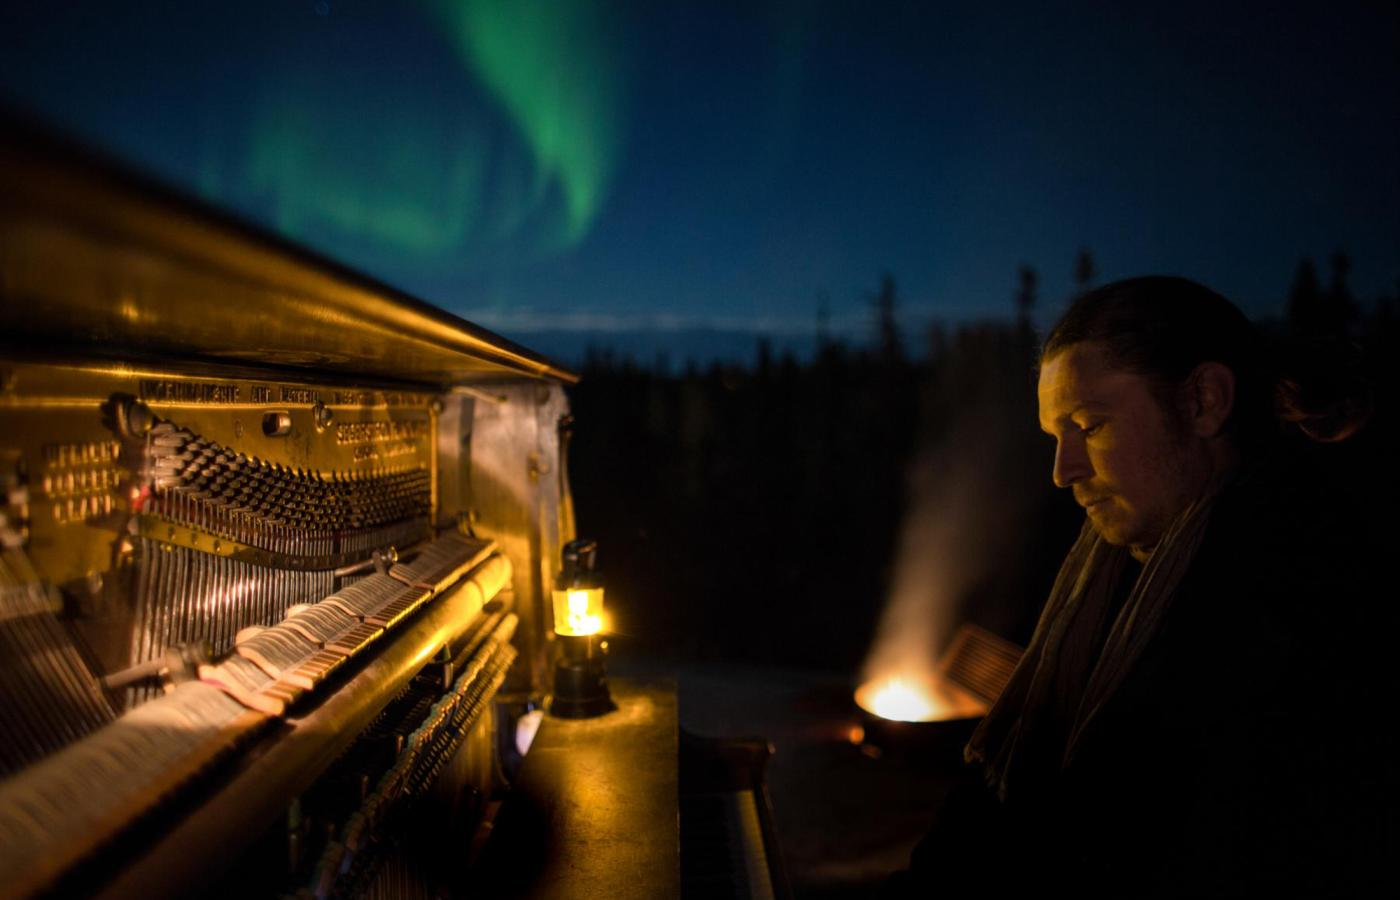 Roman Zavada sits at a piano outside in the dark. The green northern lights dance overhead.